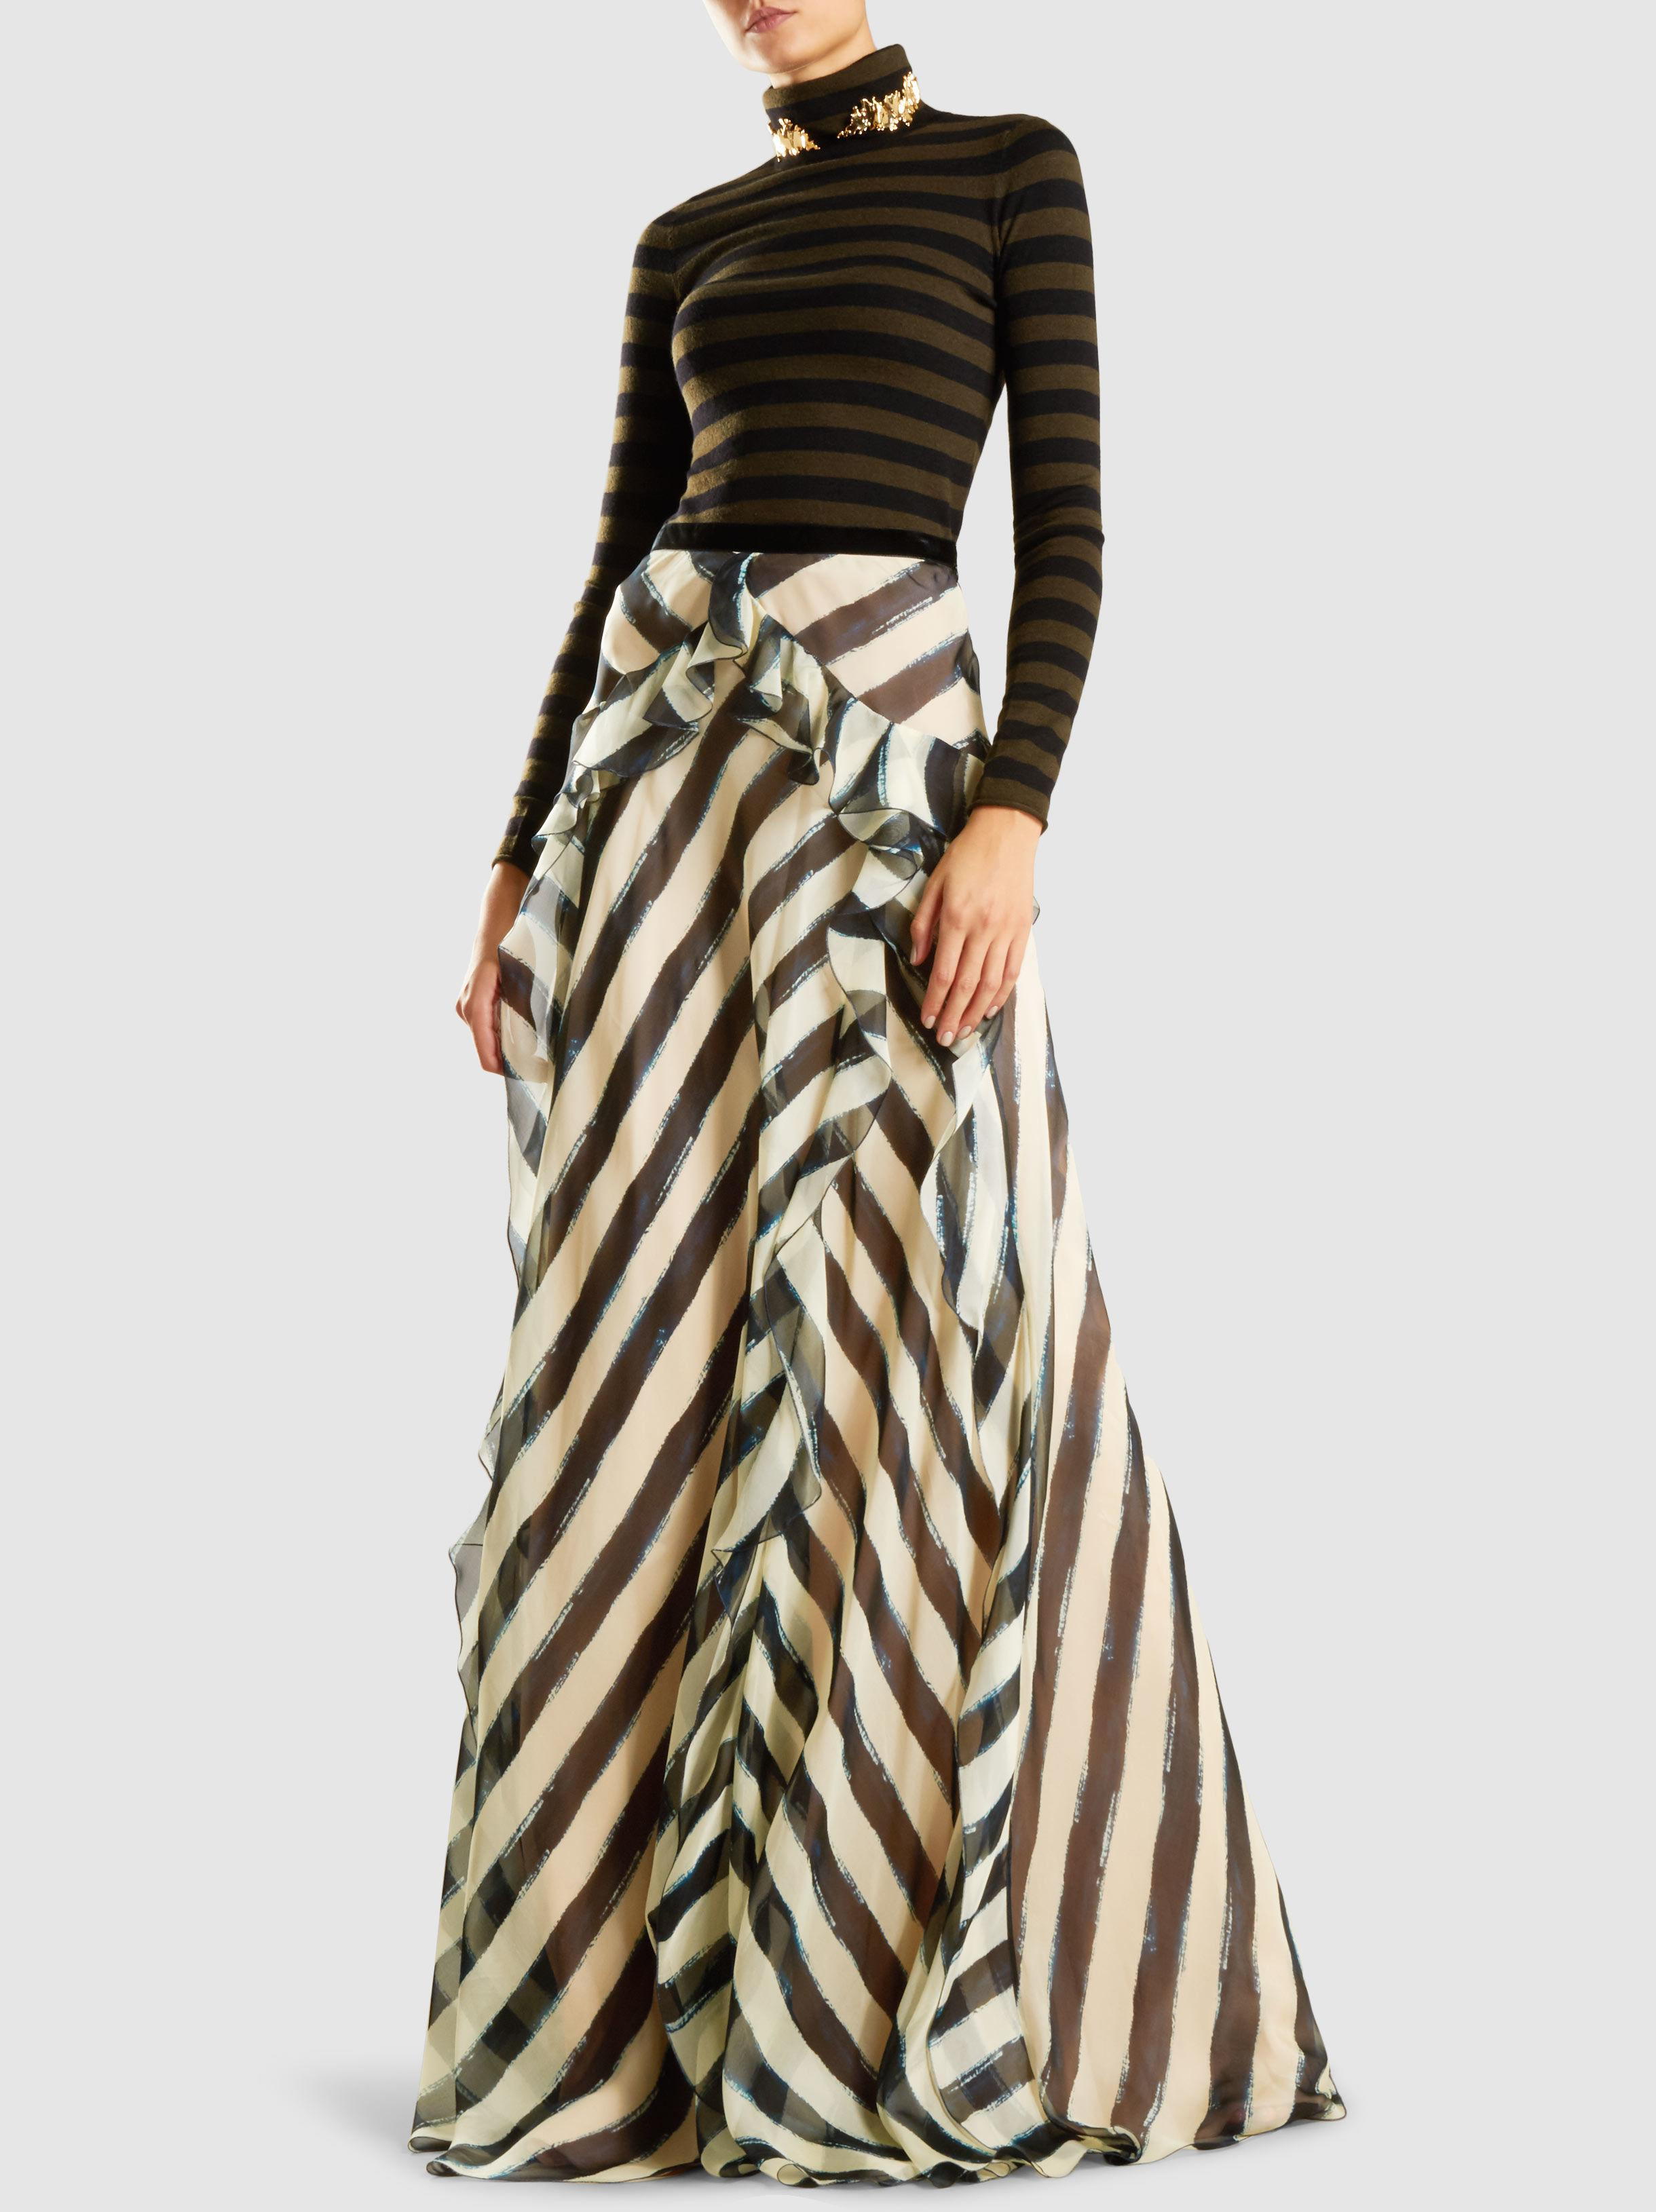 Free Shipping Recommend Ruffle Striped Silk Maxi Skirt Alberta Ferretti Buy Cheap Low Shipping Fee Pay With Visa Cheap Price p5s9BUU